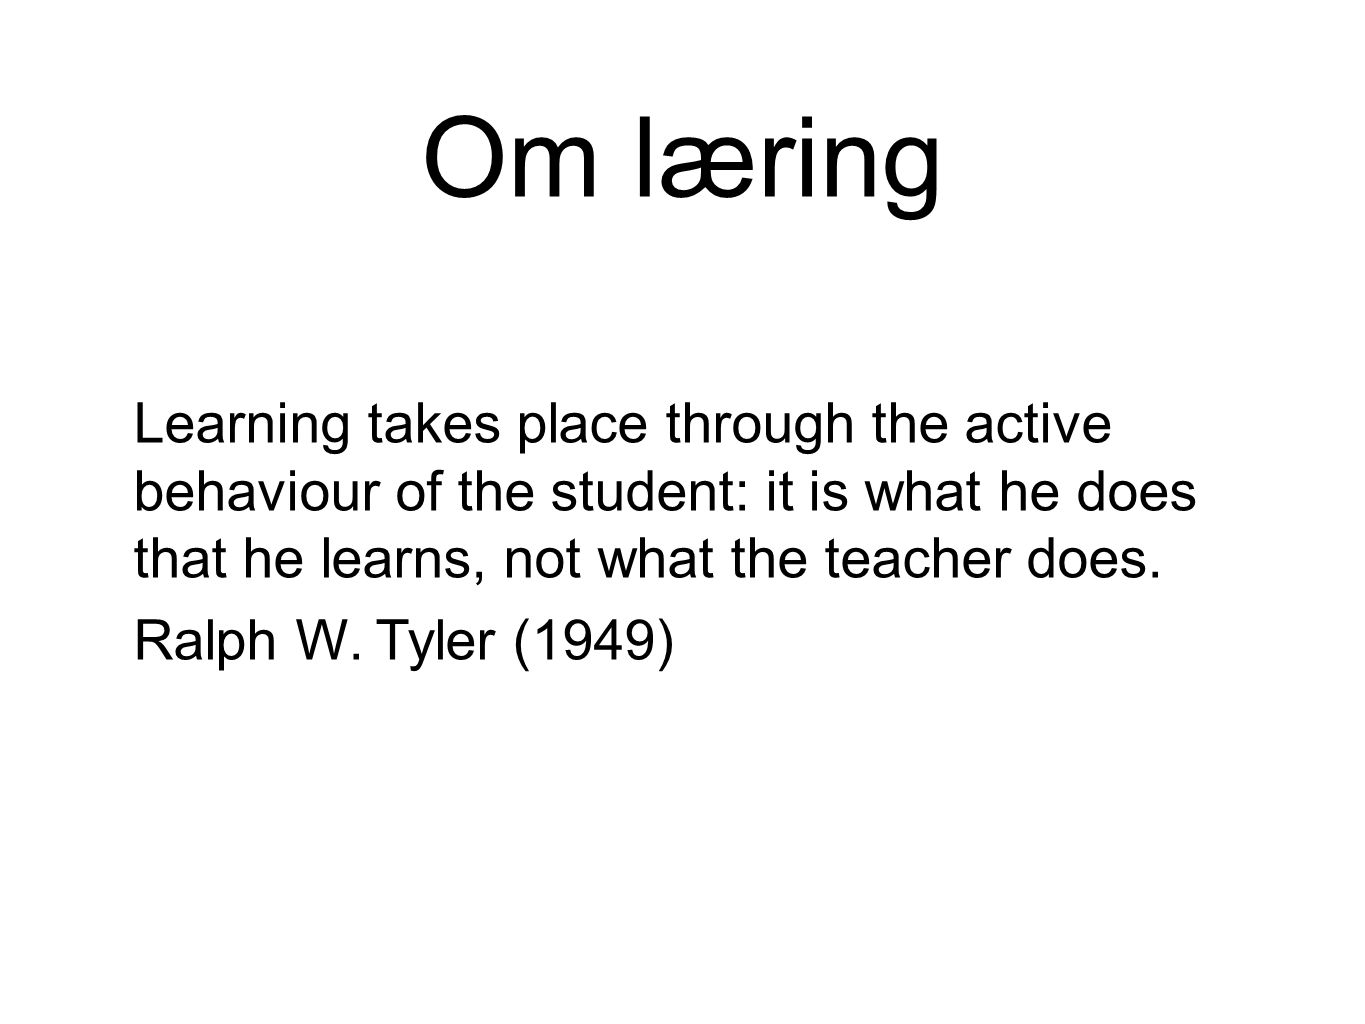 Om læring Learning takes place through the active behaviour of the student: it is what he does that he learns, not what the teacher does.